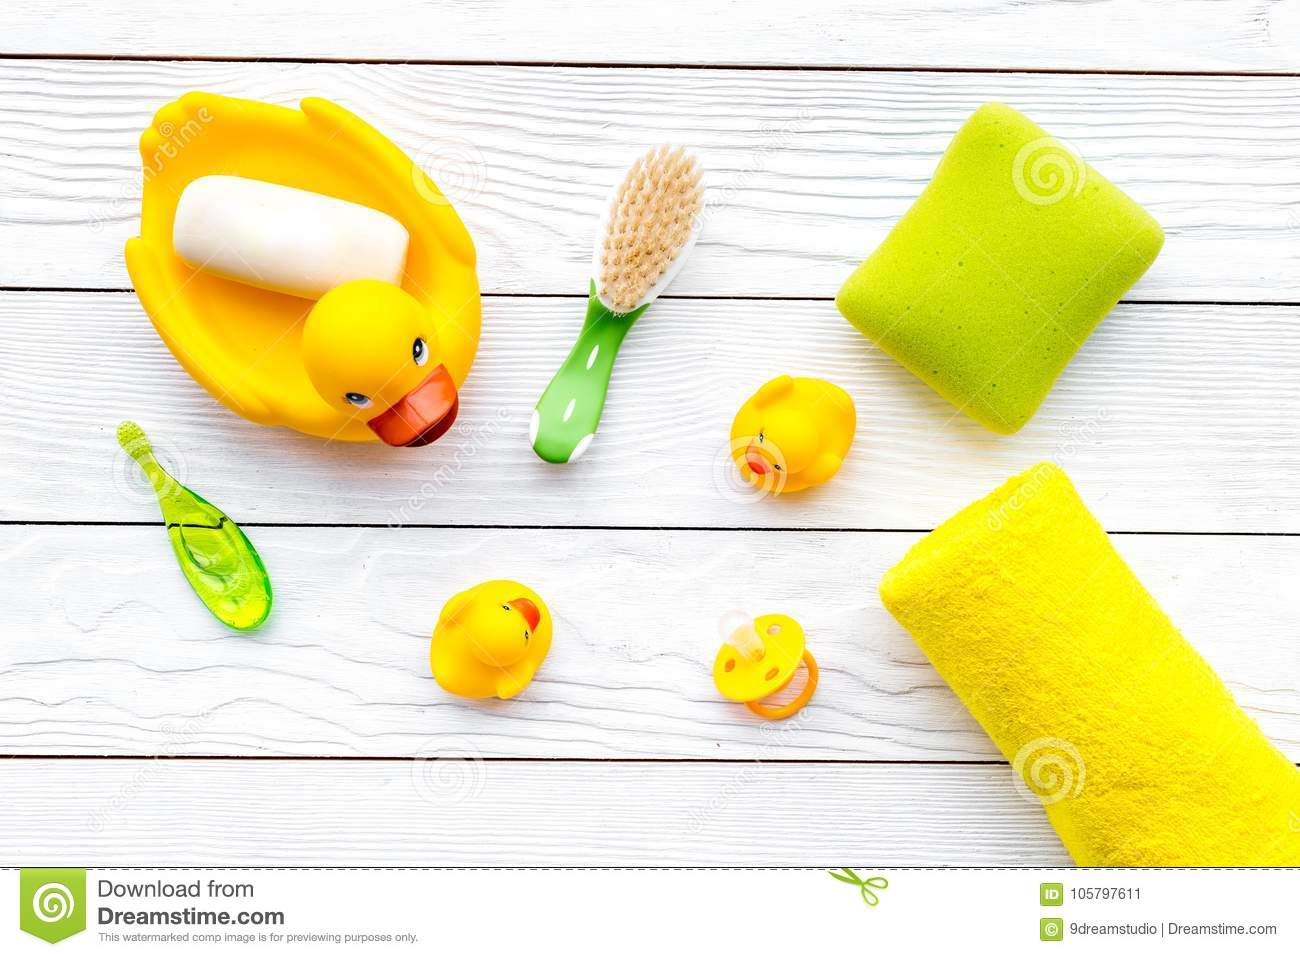 Baby bath set with yellow rubber duck. Soap, sponge, brushes, towel on white wooden background top view